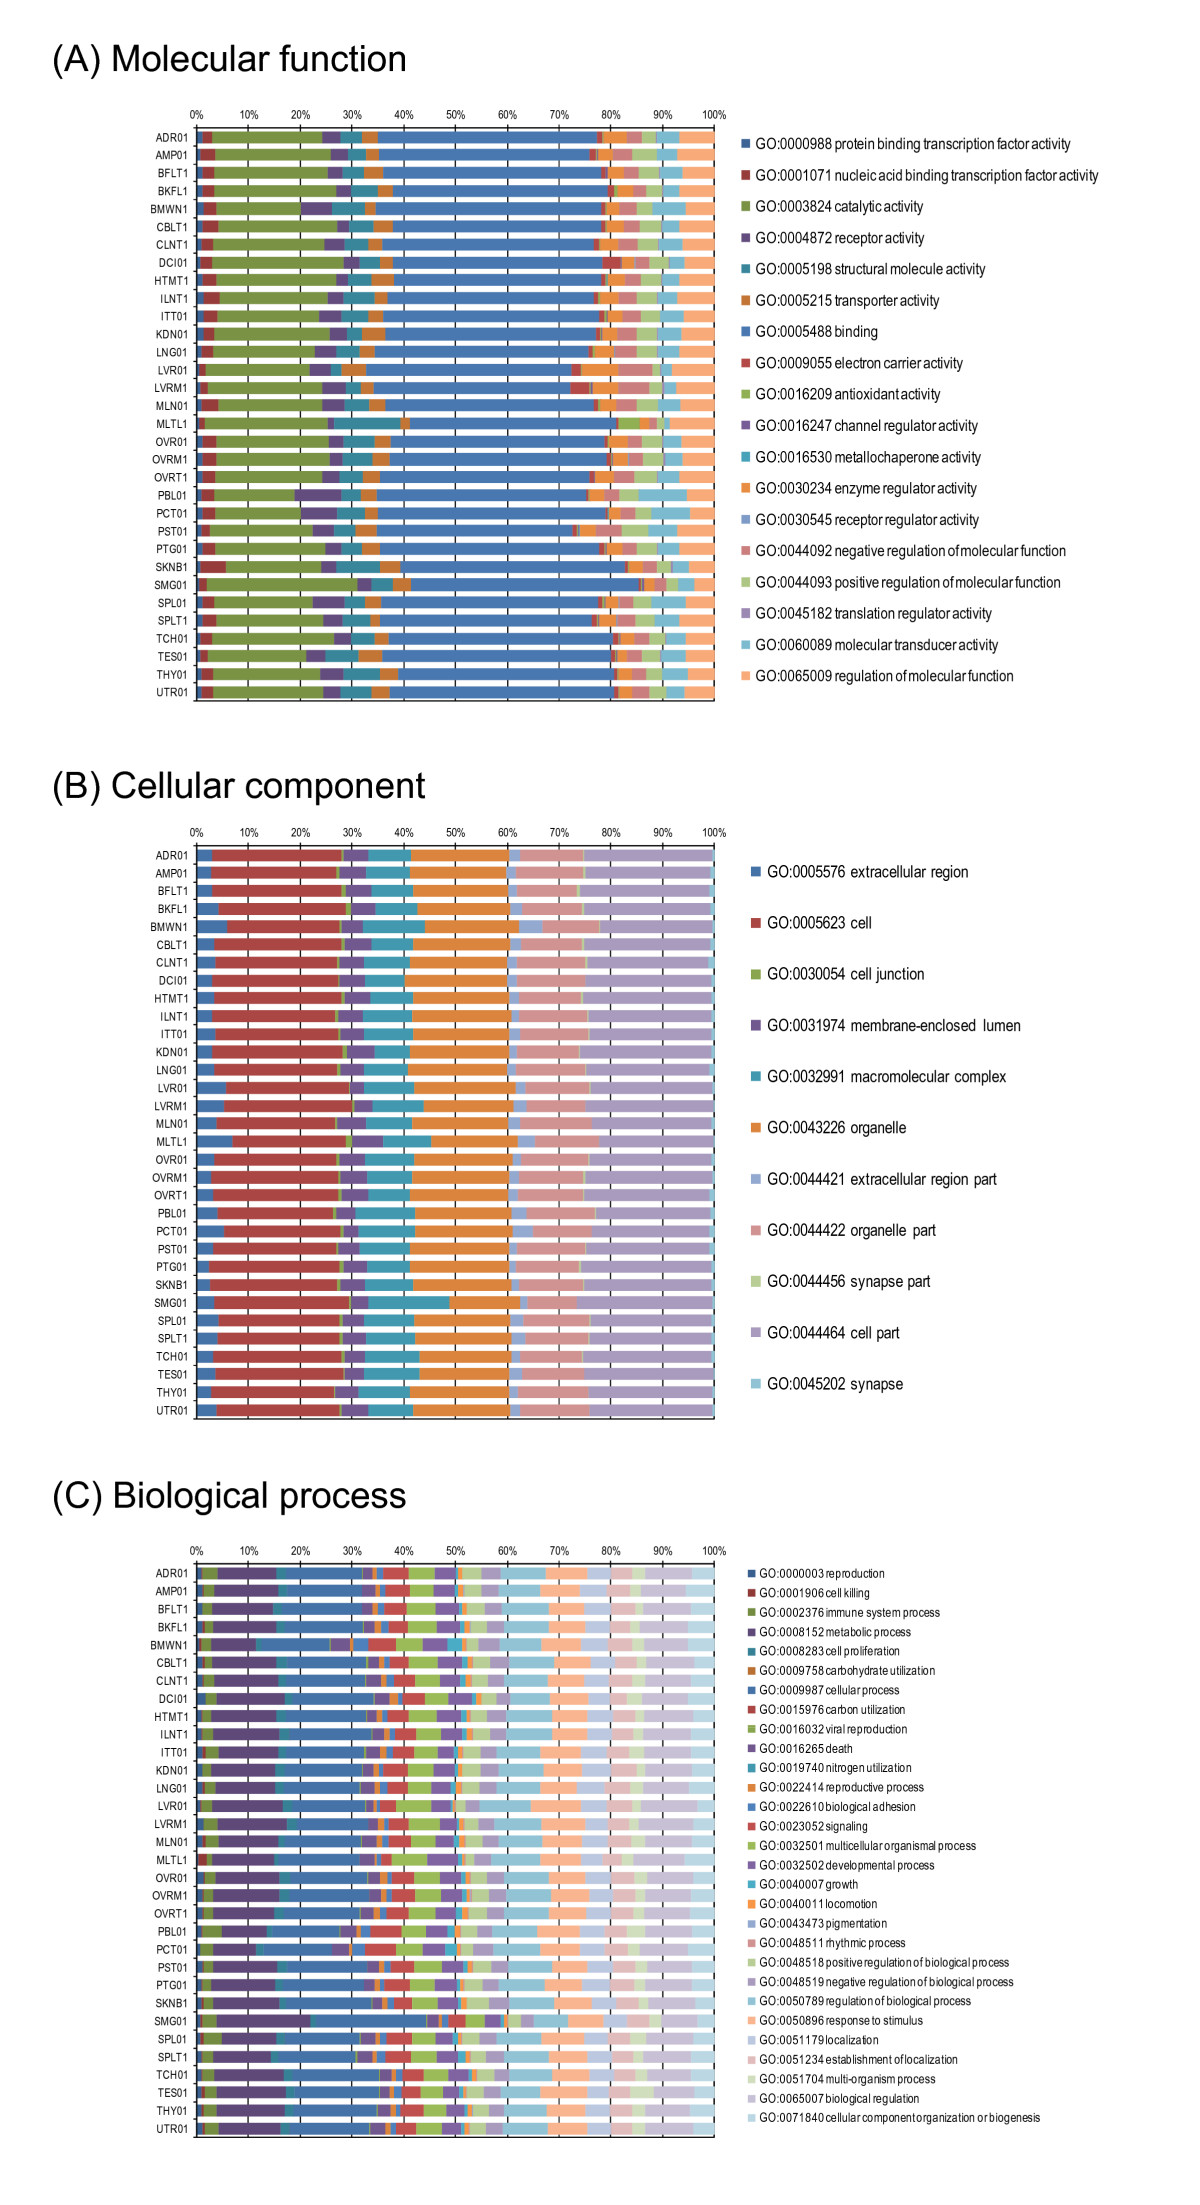 https://static-content.springer.com/image/art%3A10.1186%2F1471-2164-13-581/MediaObjects/12864_2011_Article_4358_Fig2_HTML.jpg